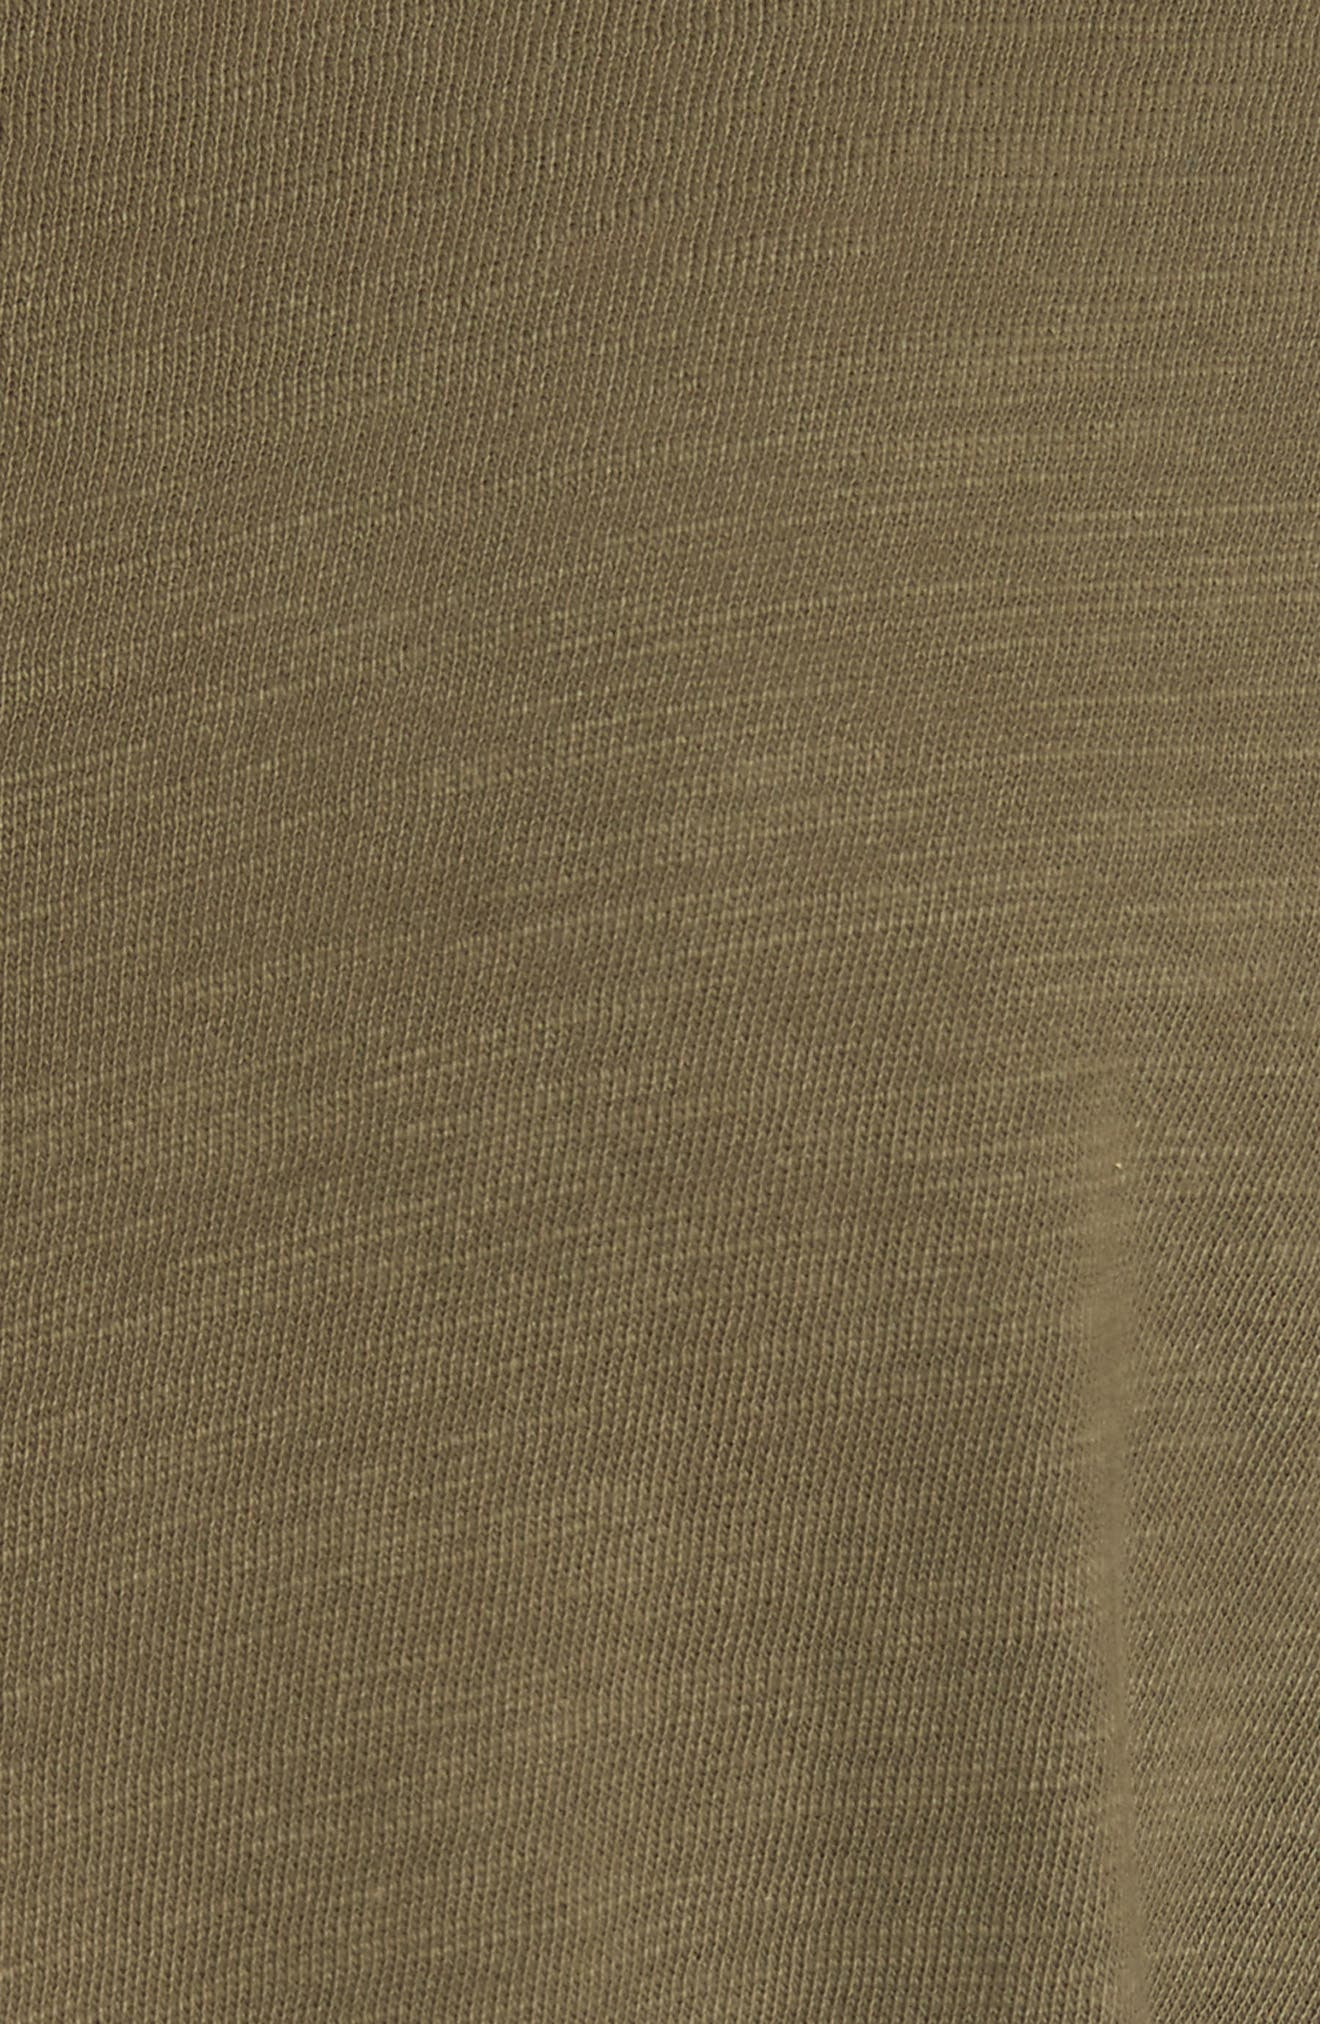 Standard Issue Slubbed Cotton T-Shirt,                             Alternate thumbnail 5, color,                             Army